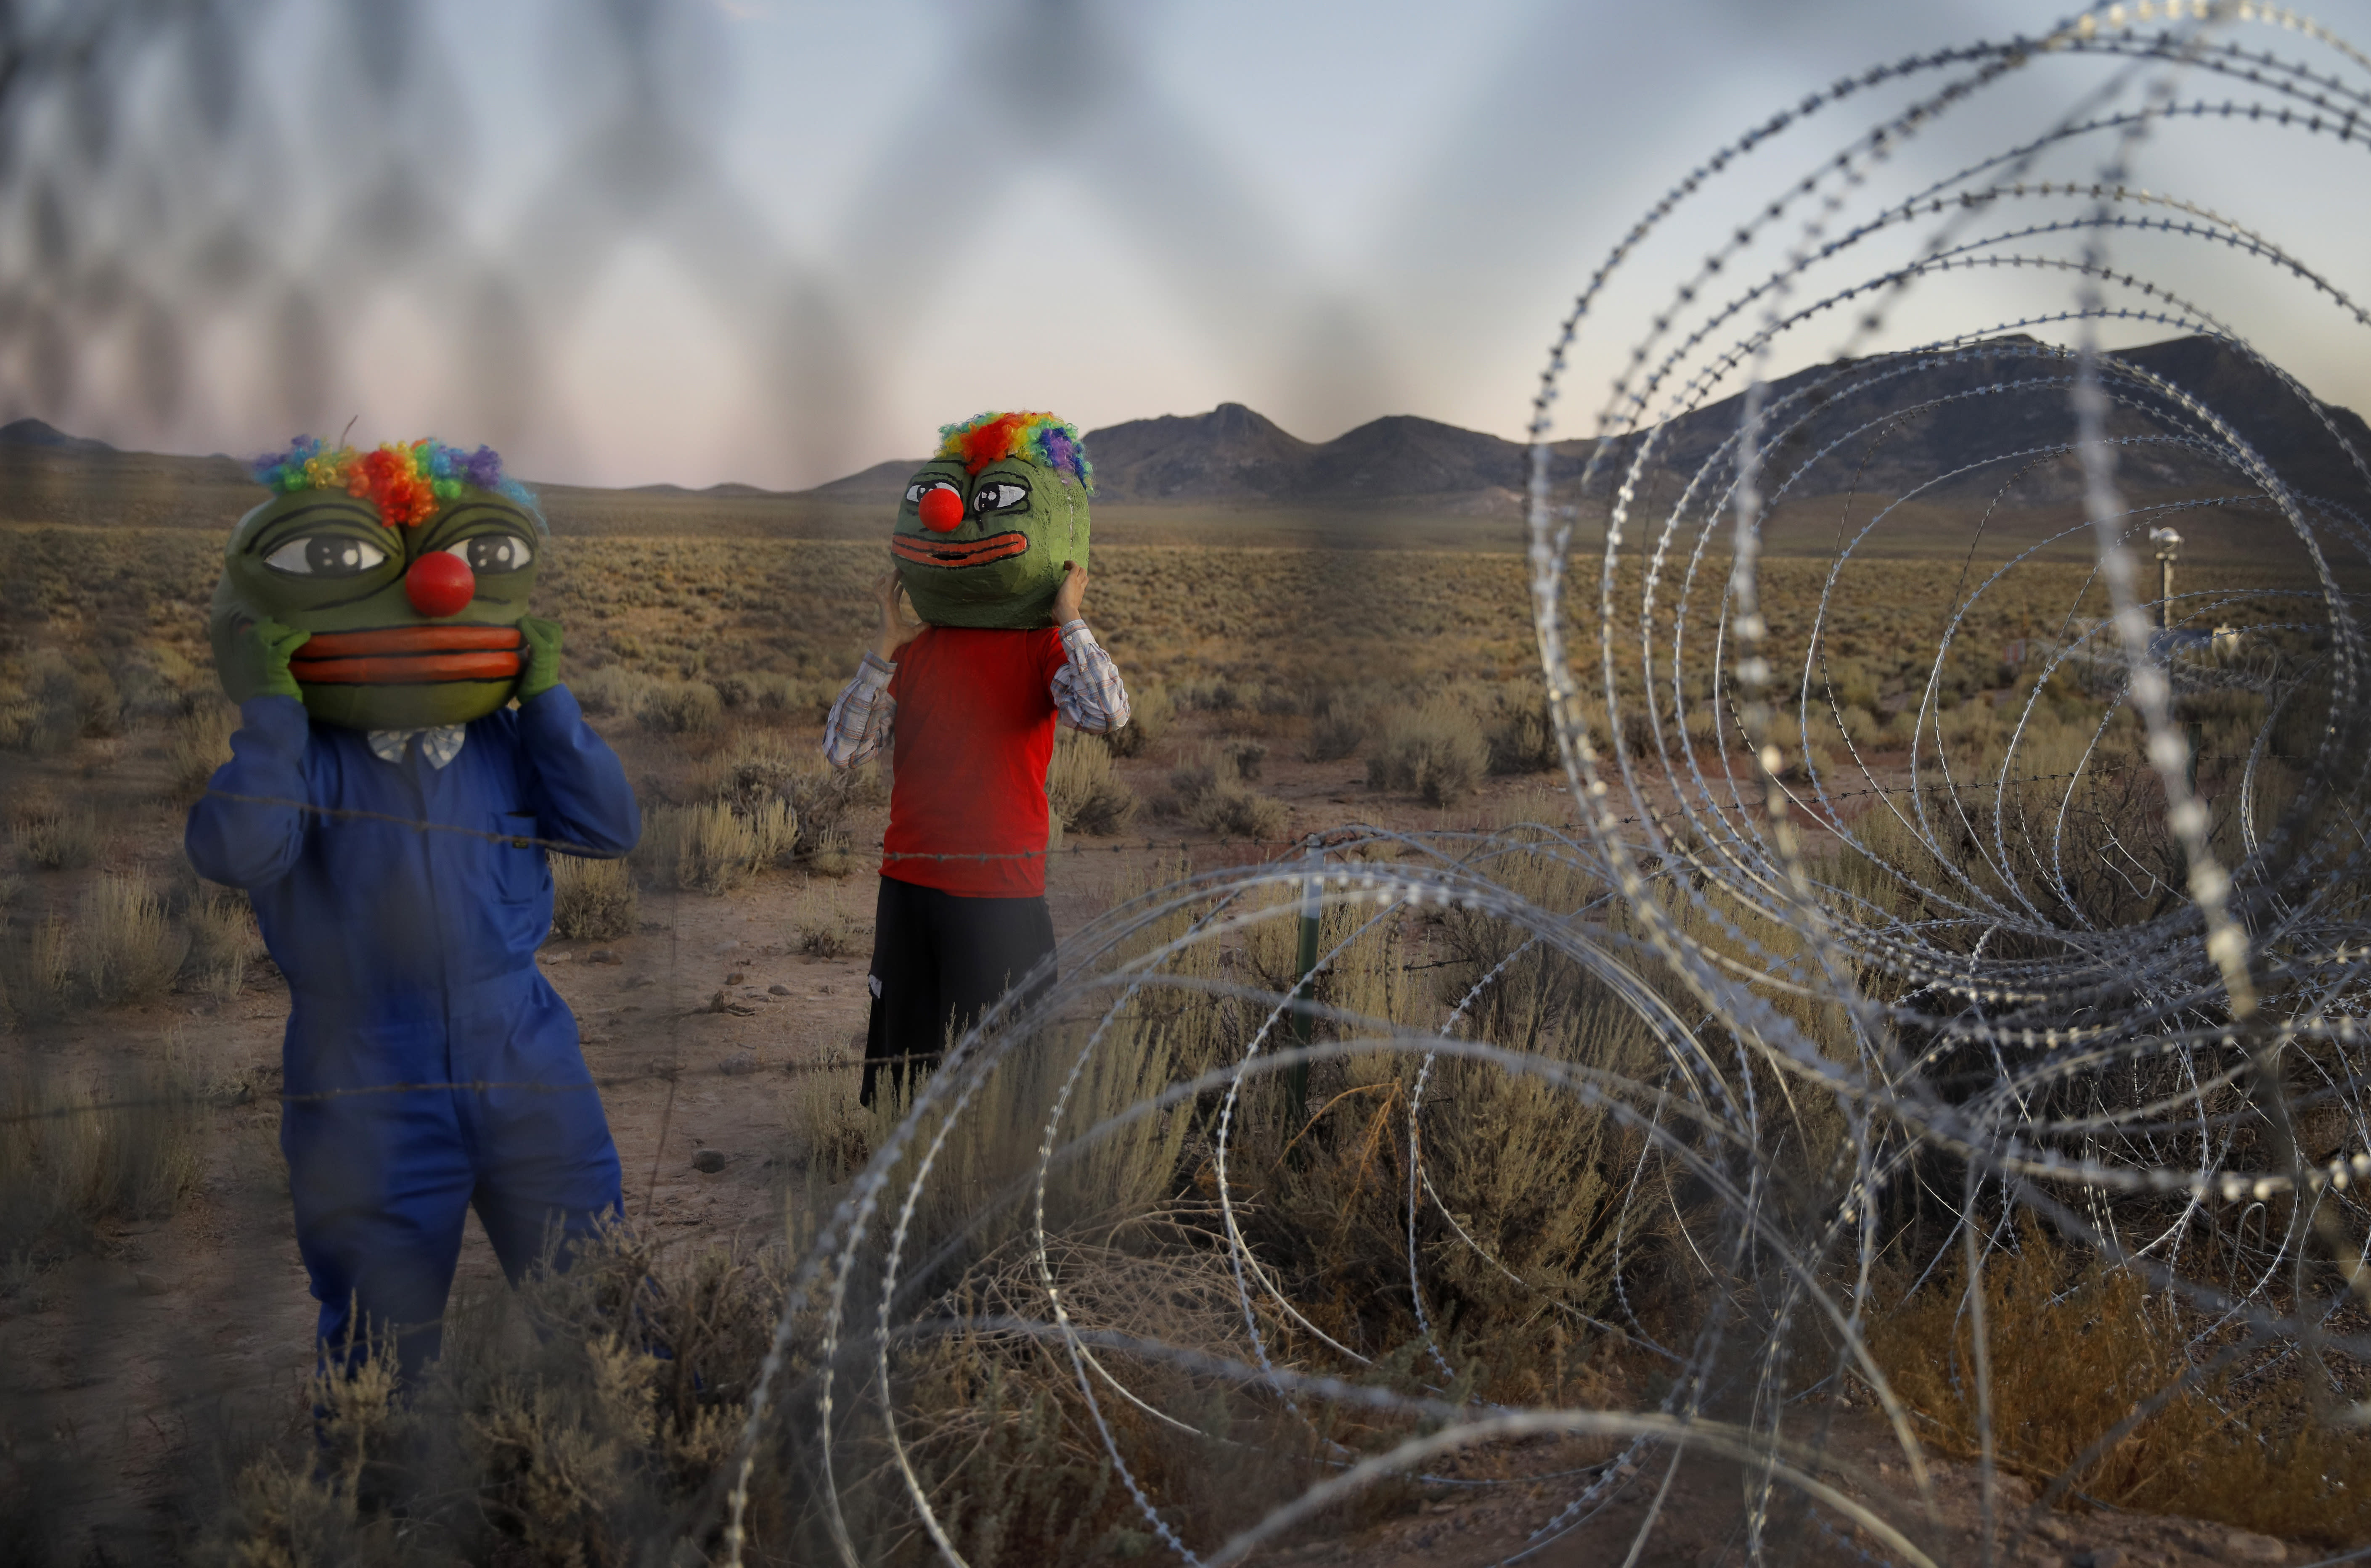 """Martin Custodio, left, and Rafael Castillo wear Pepe masks while standing near razor wire at an entrance to the Nevada Test and Training Range near Area 51, Friday, Sept. 20, 2019, near Rachel, Nev. People came to visit the gate inspired by the """"Storm Area 51"""" internet hoax. (AP Photo/John Locher)"""